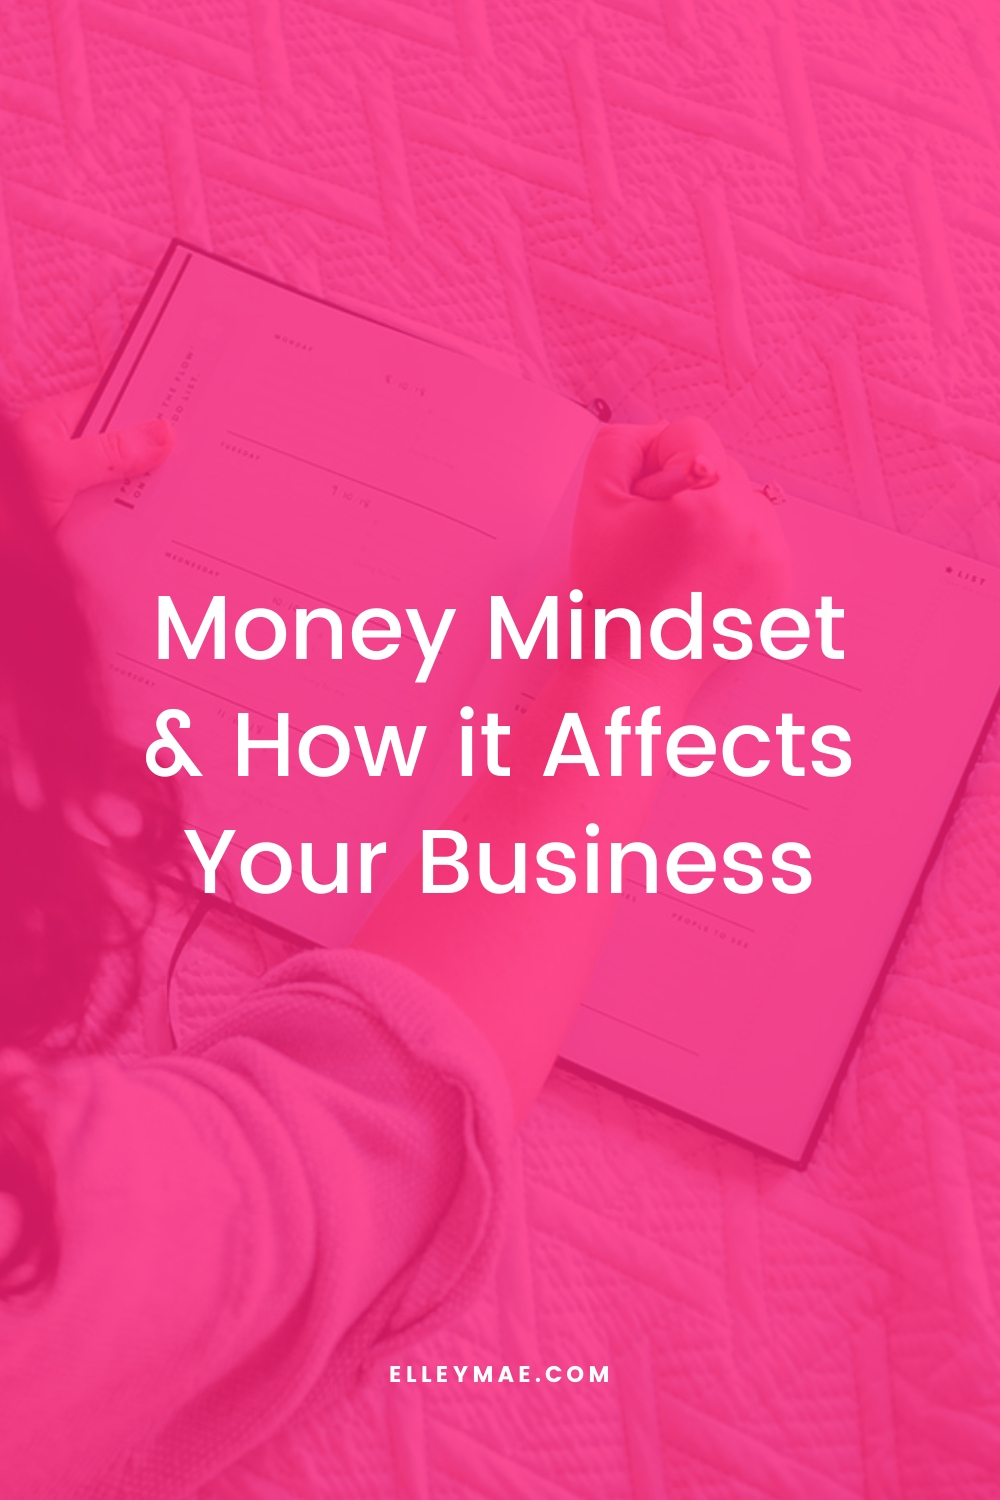 Money Mindset & How it Affects Your Business